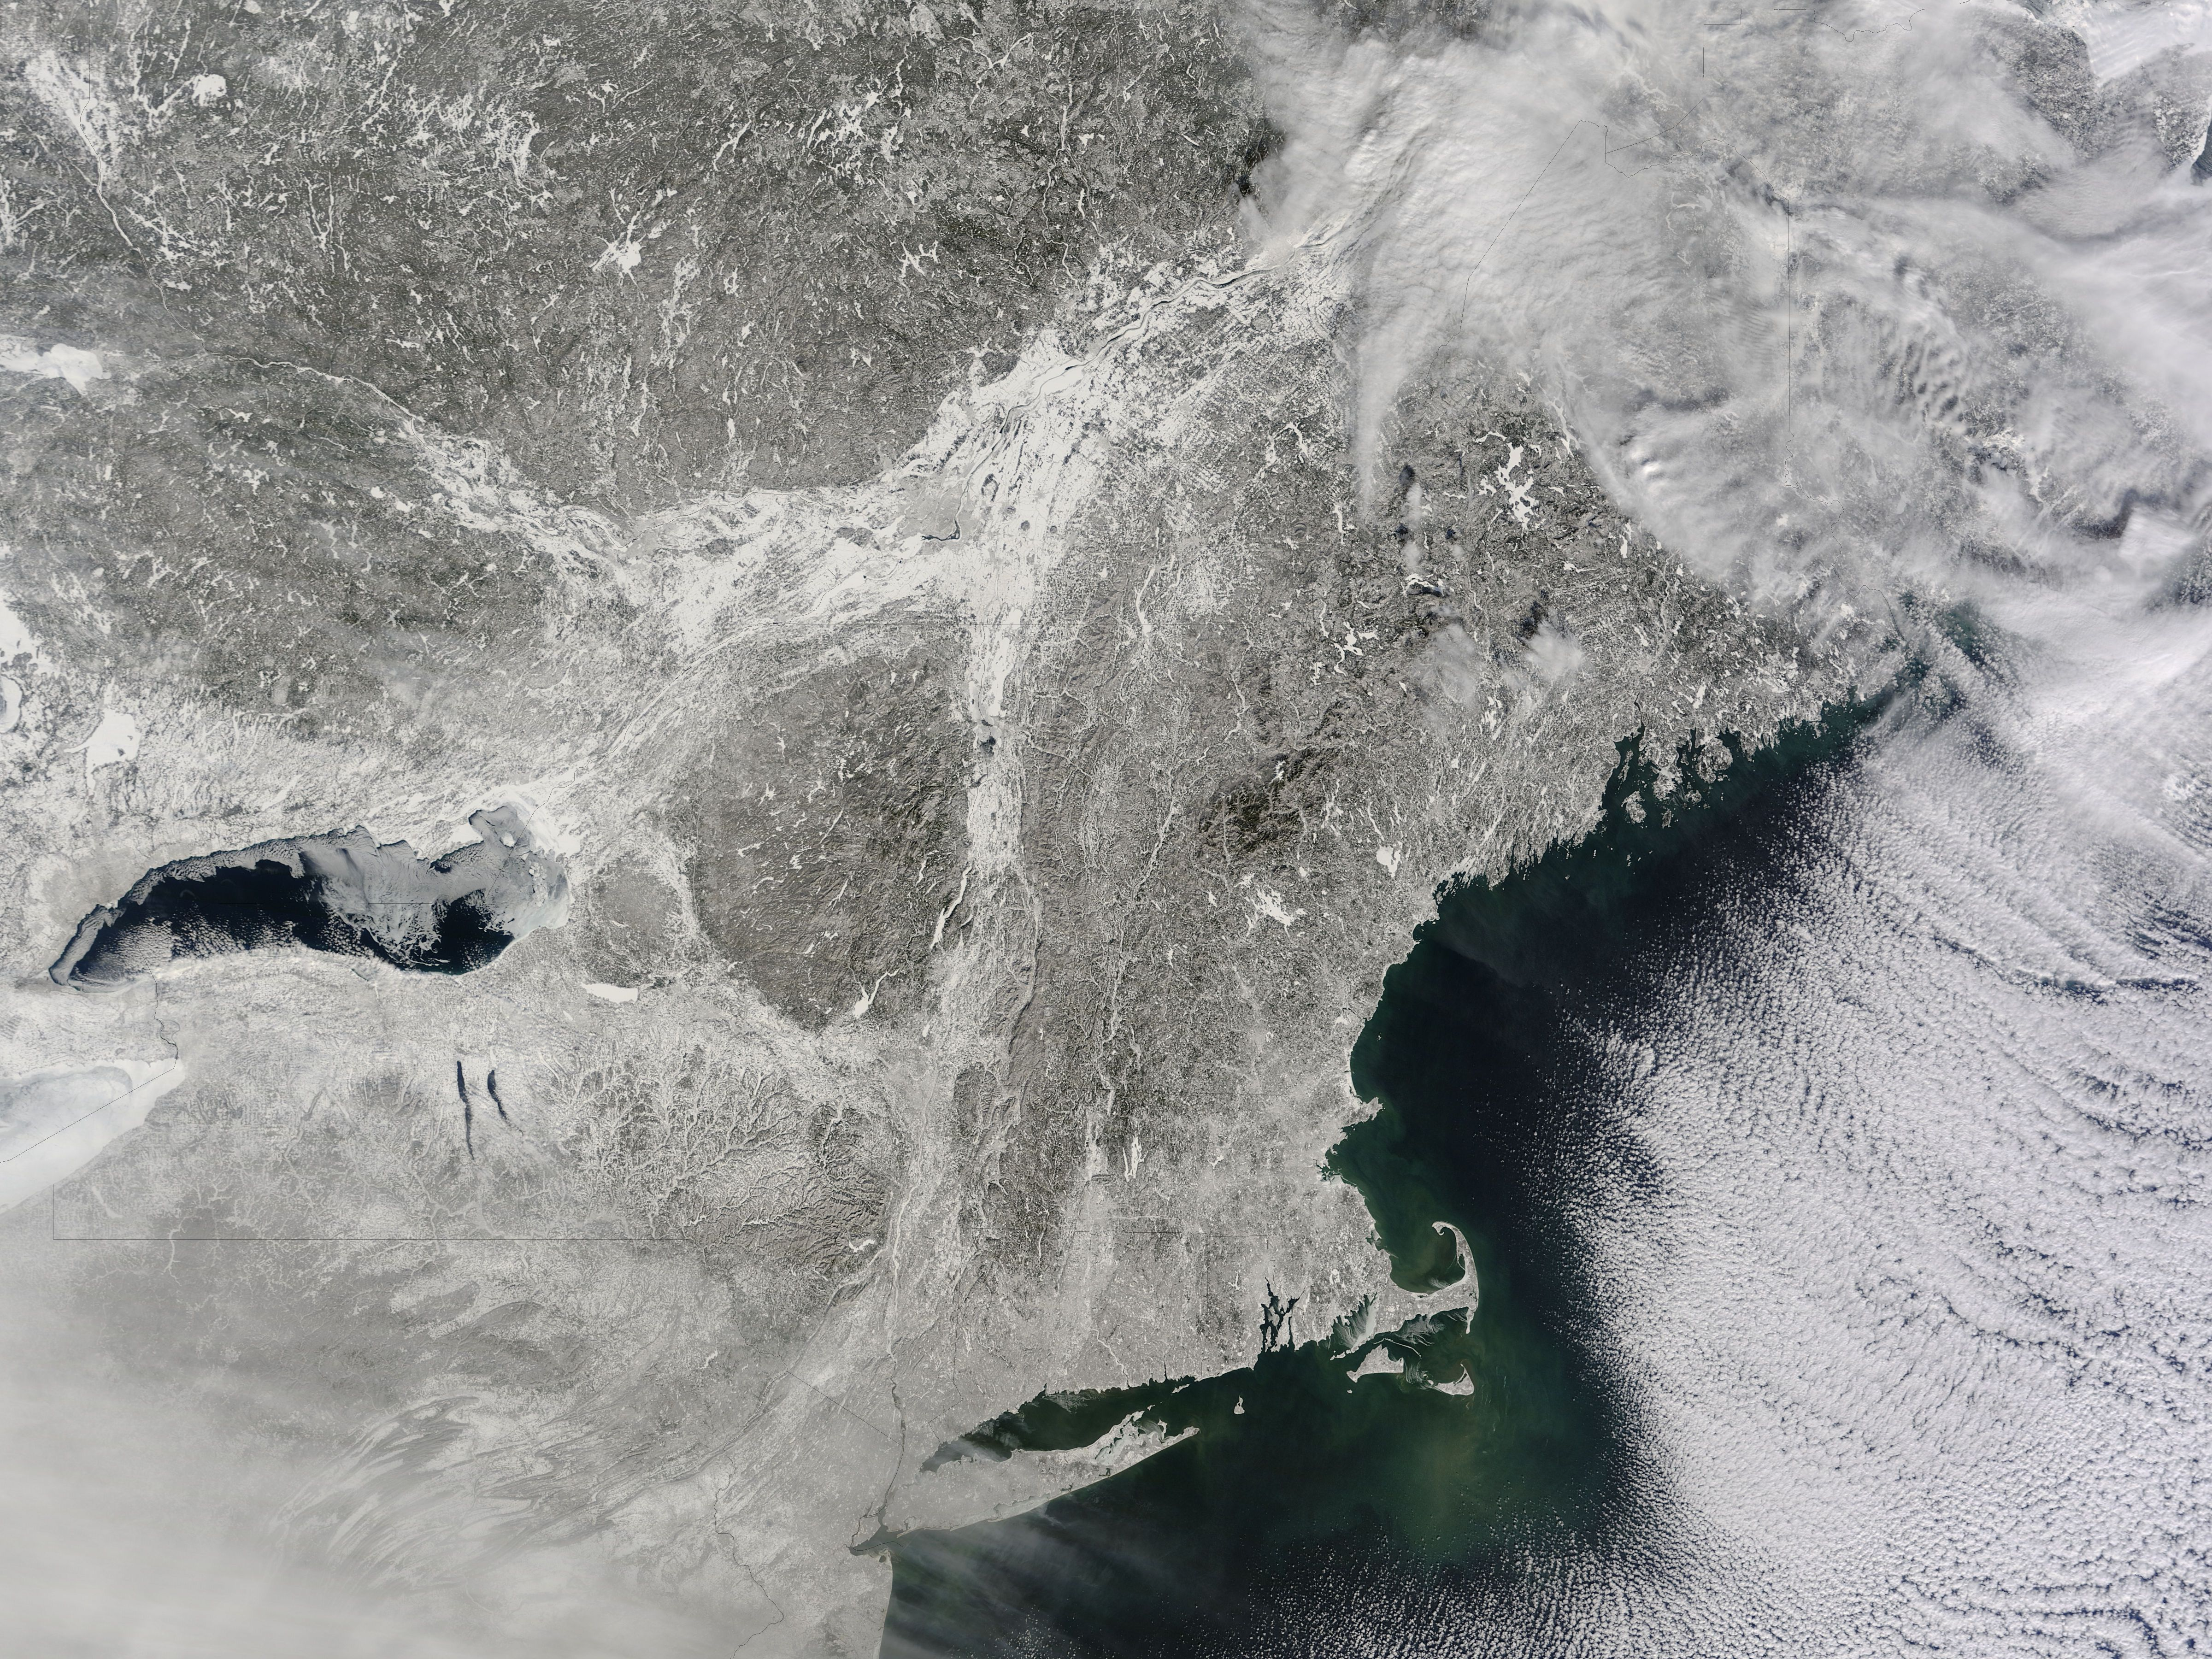 Snow Covered Northeastern United States Snow Covered Northeastern United